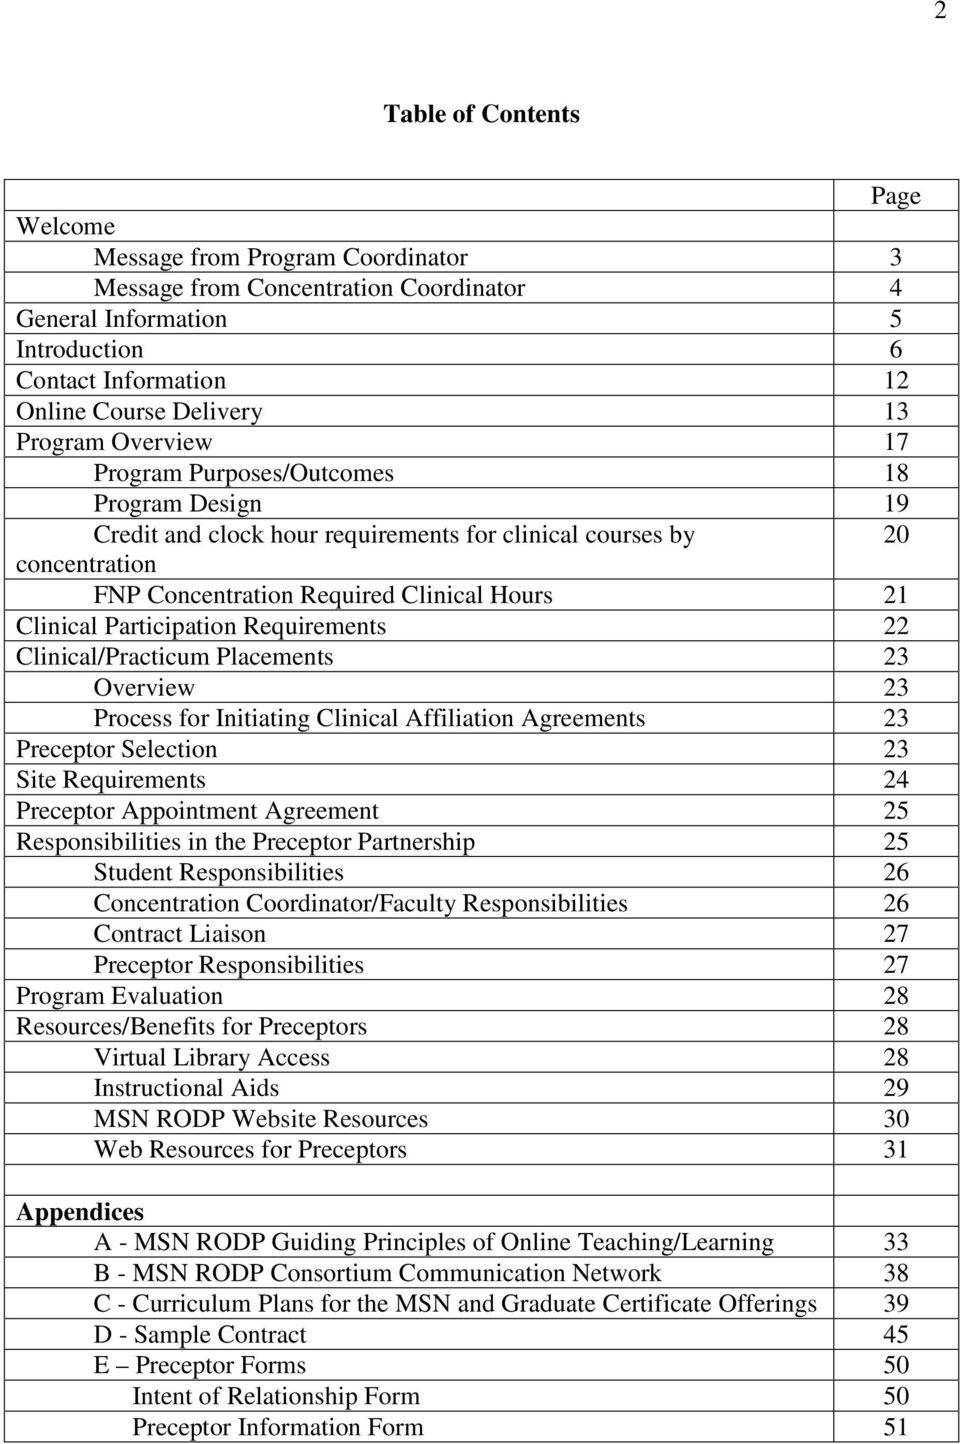 Participation Requirements 22 Clinical/Practicum Placements 23 Overview 23 Process for Initiating Clinical Affiliation Agreements 23 Preceptor Selection 23 Site Requirements 24 Preceptor Appointment